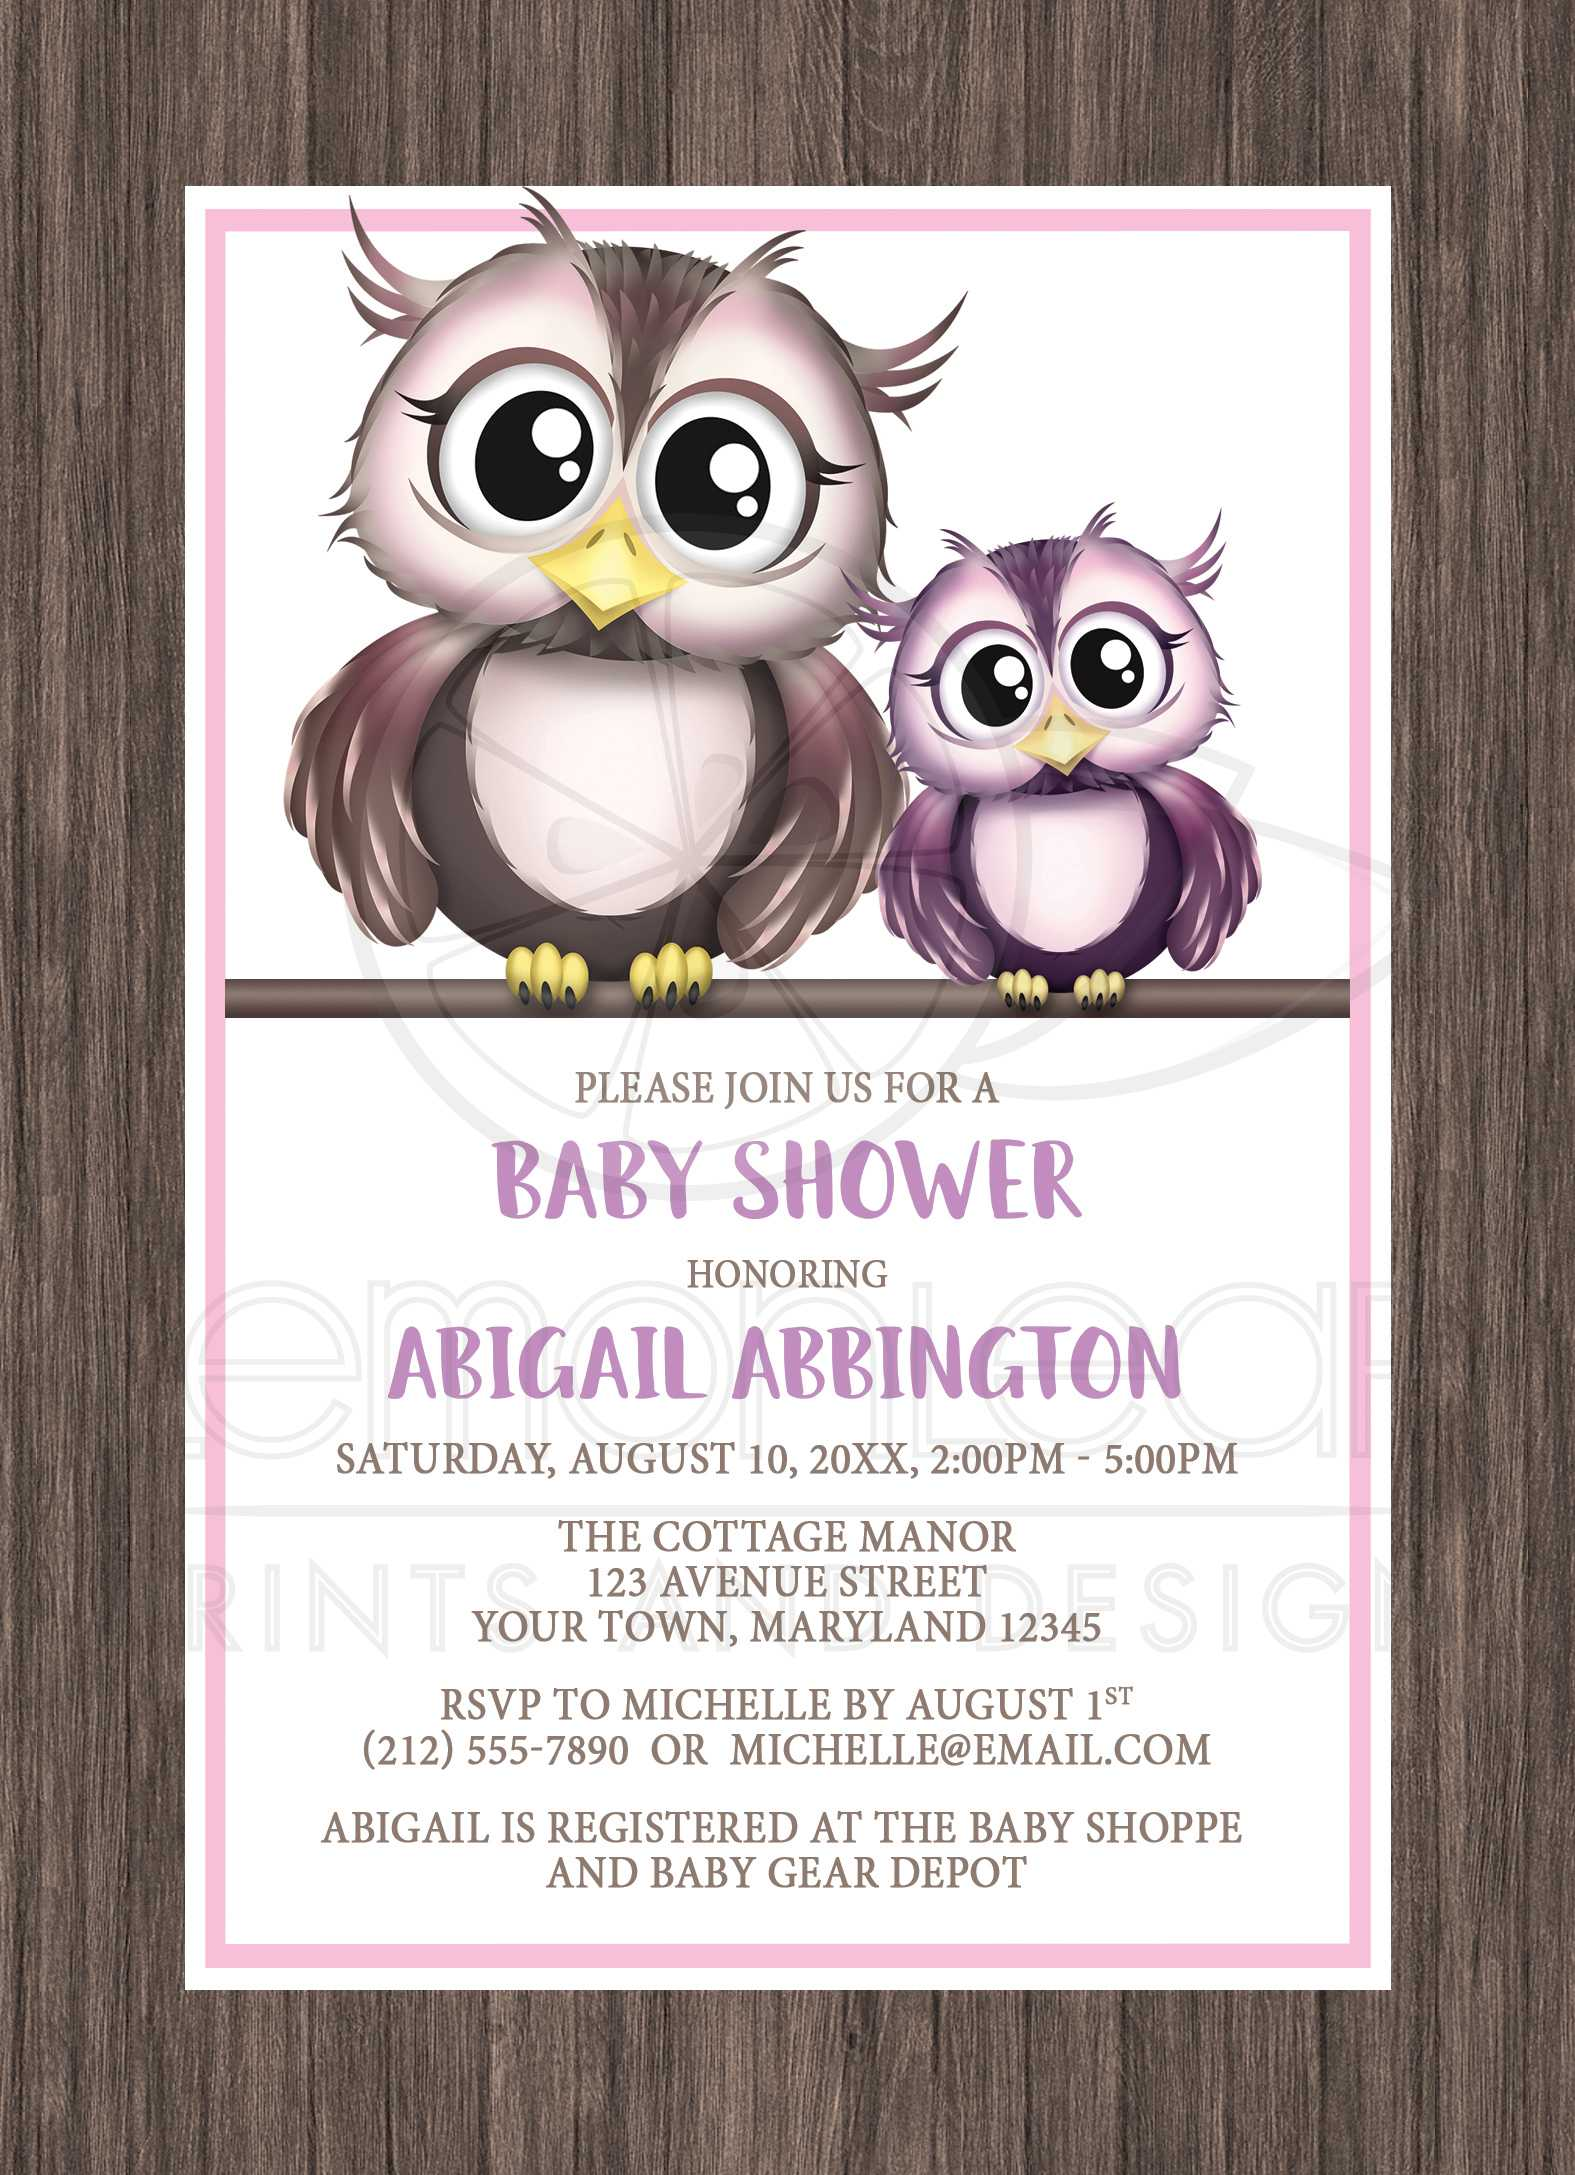 Baby Shower Invitations Owls Pink And Purple With Rustic Wood